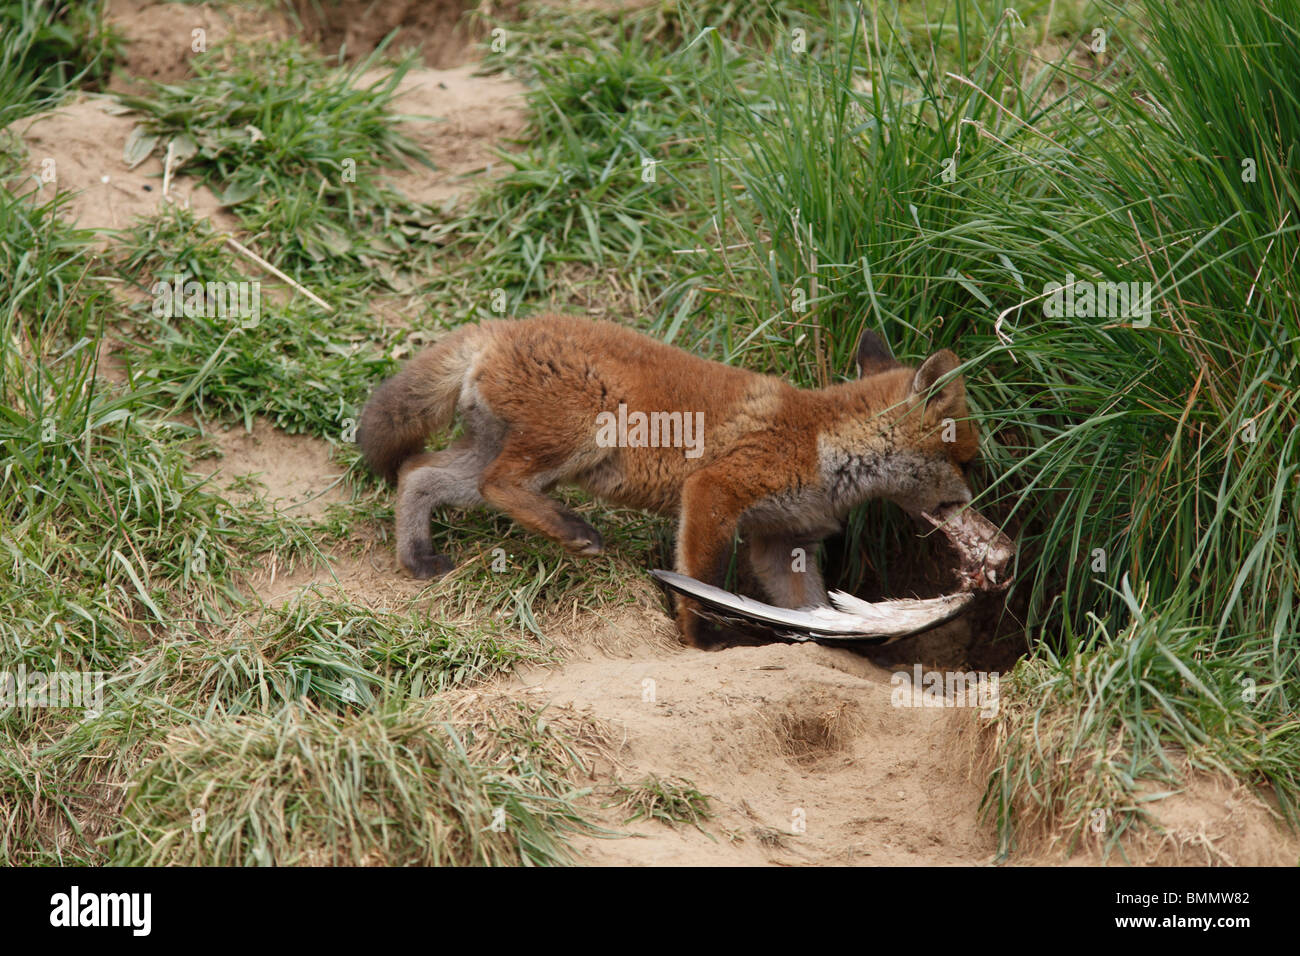 Fox (Vulpes vulpes) cub carrying wing bone into earth - Stock Image